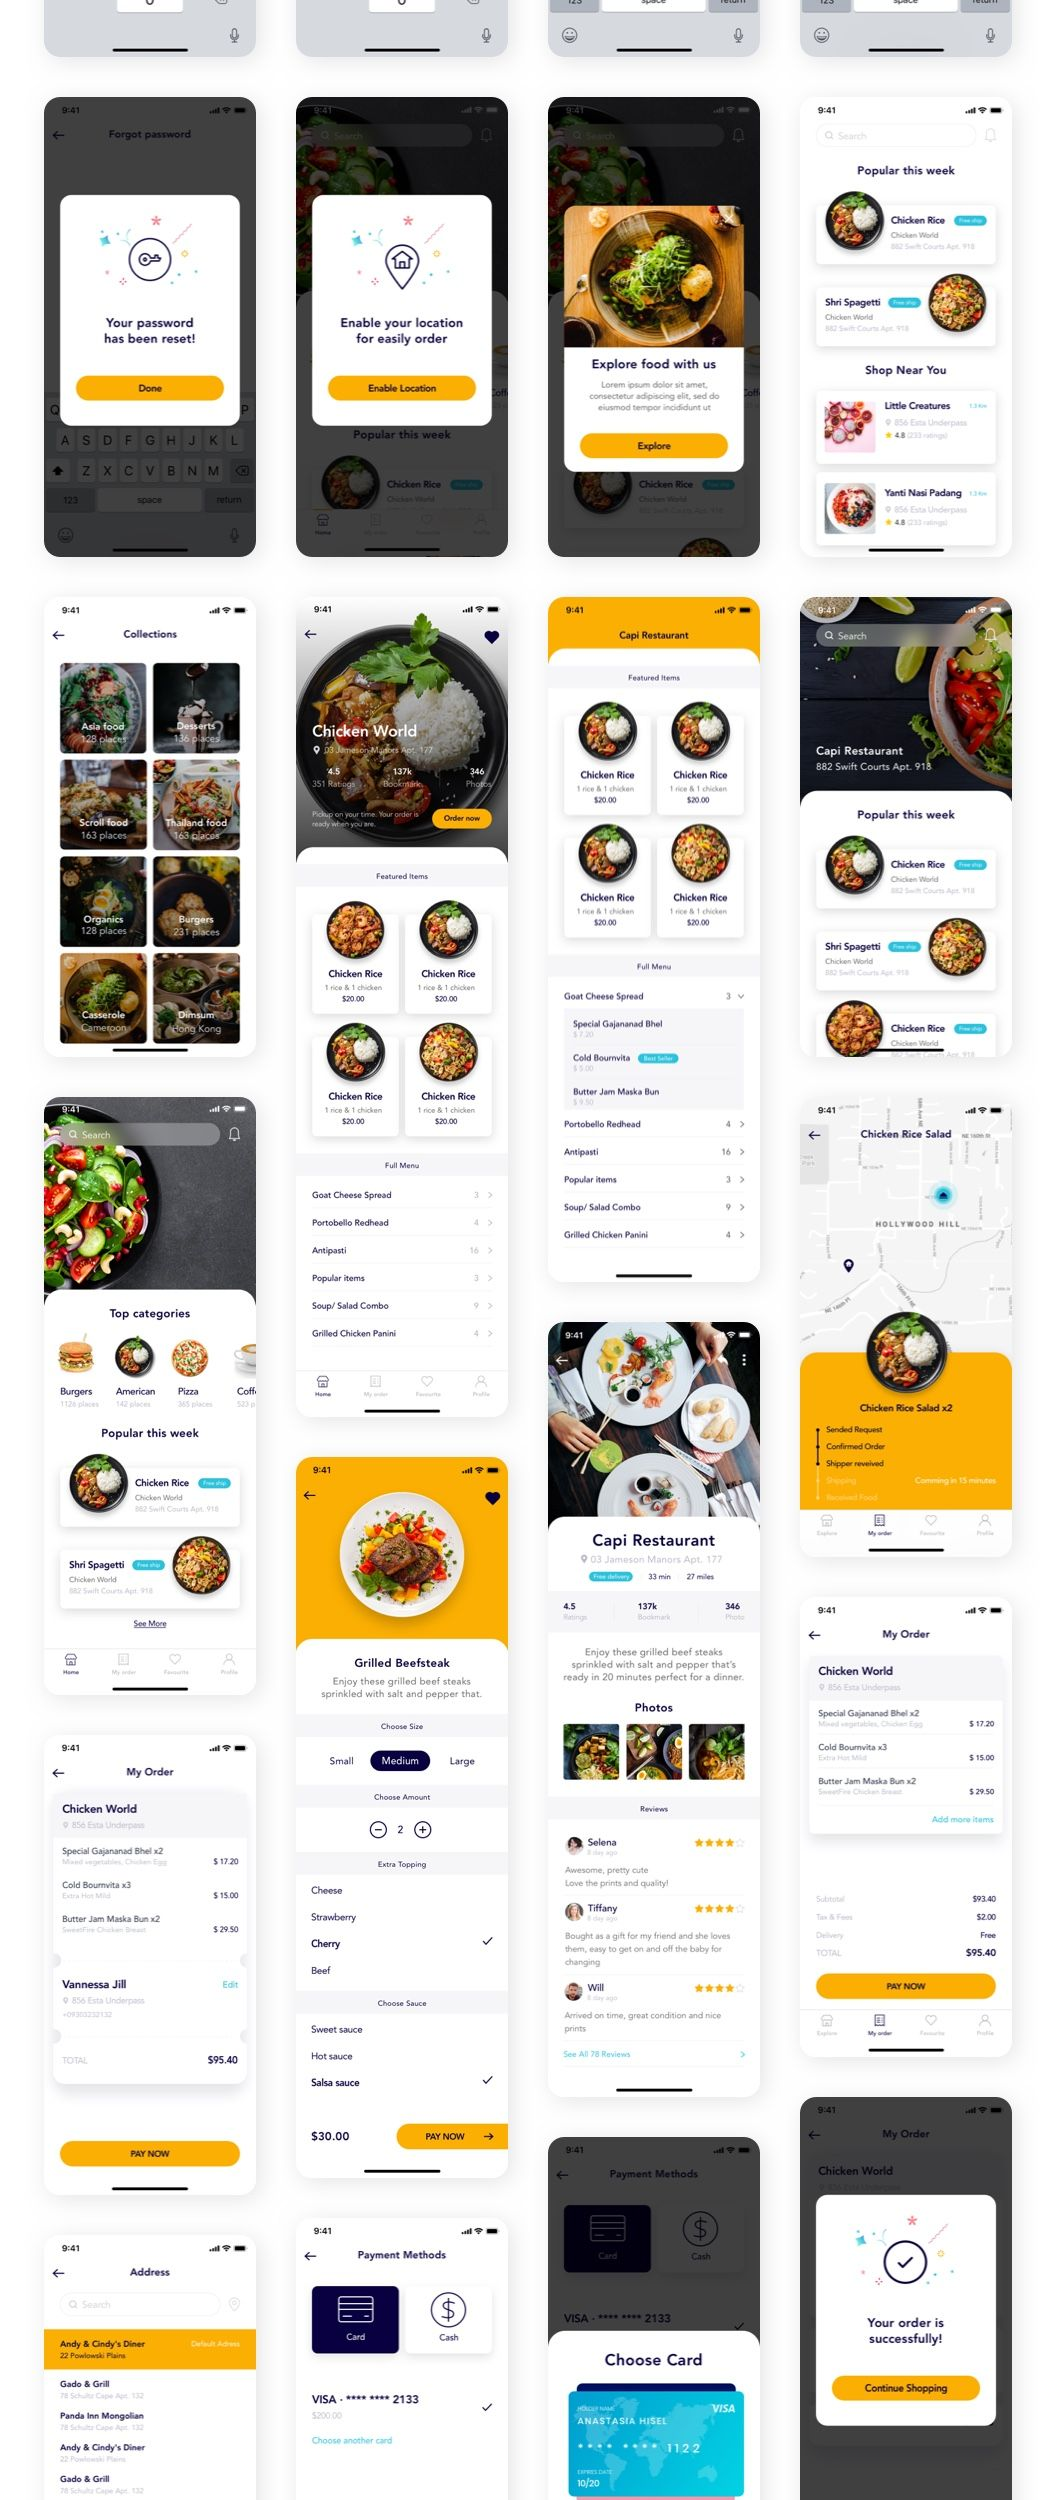 Foode - Food ordering mobile app